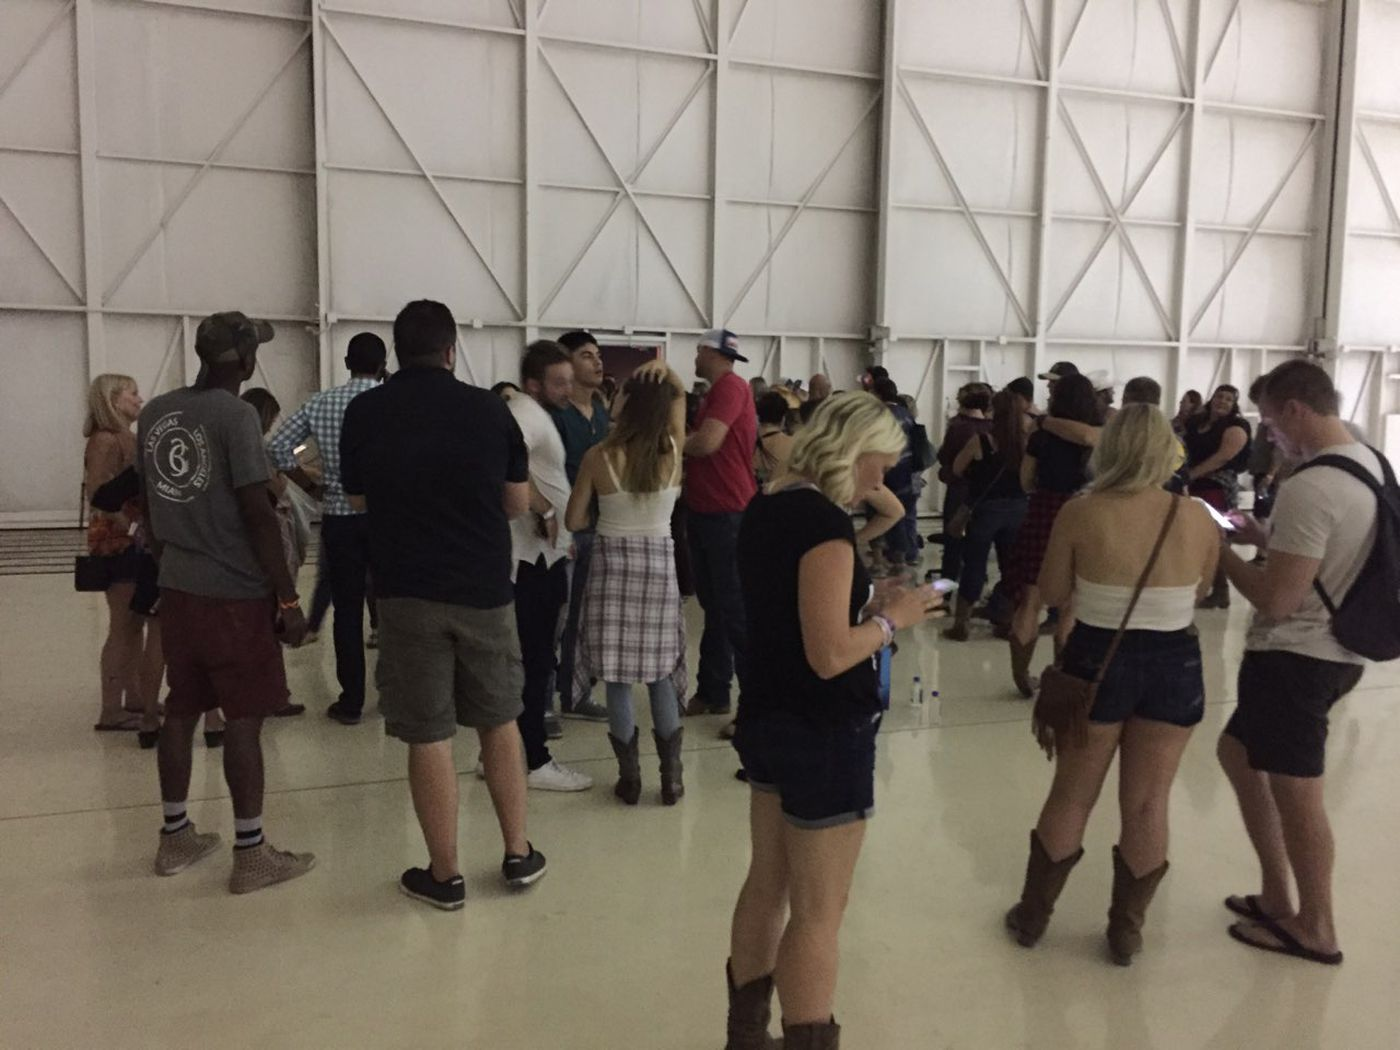 Some of the people who fled the gunfire at the Route 91 Harvest Festival in Las Vegas waited at an airplane hangar a few blocks away on Oct. 1. (Photo by Erik Ross)